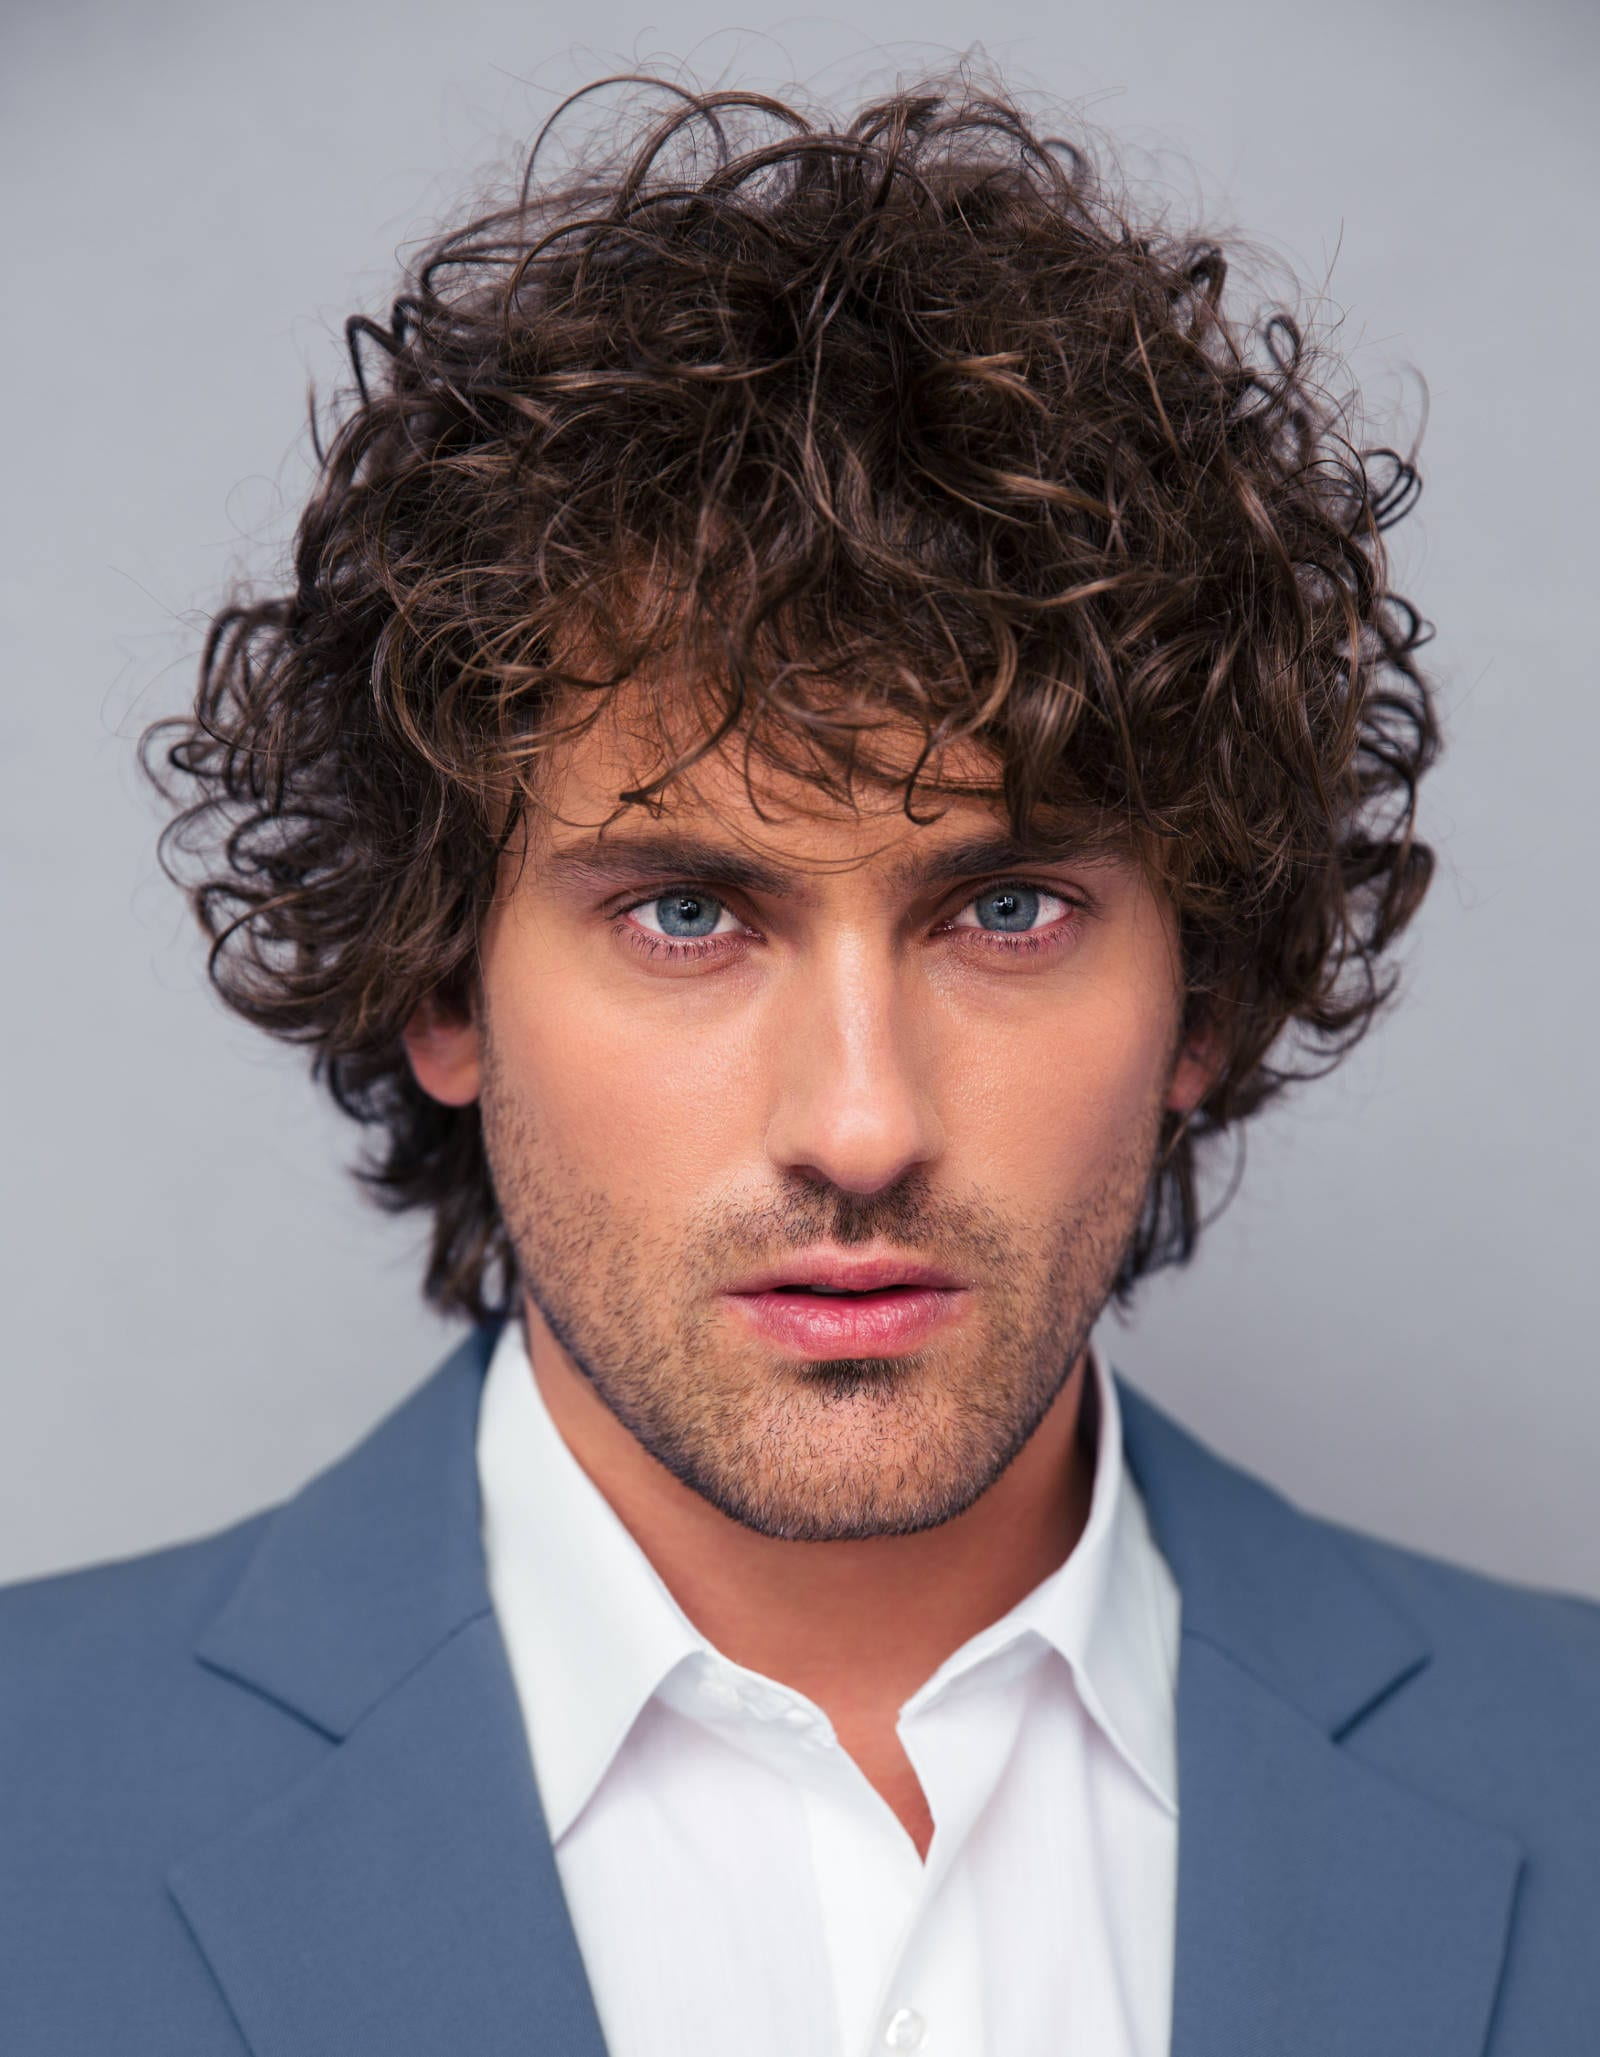 40 Modern Men S Hairstyles For Curly Hair That Will Change Your Look